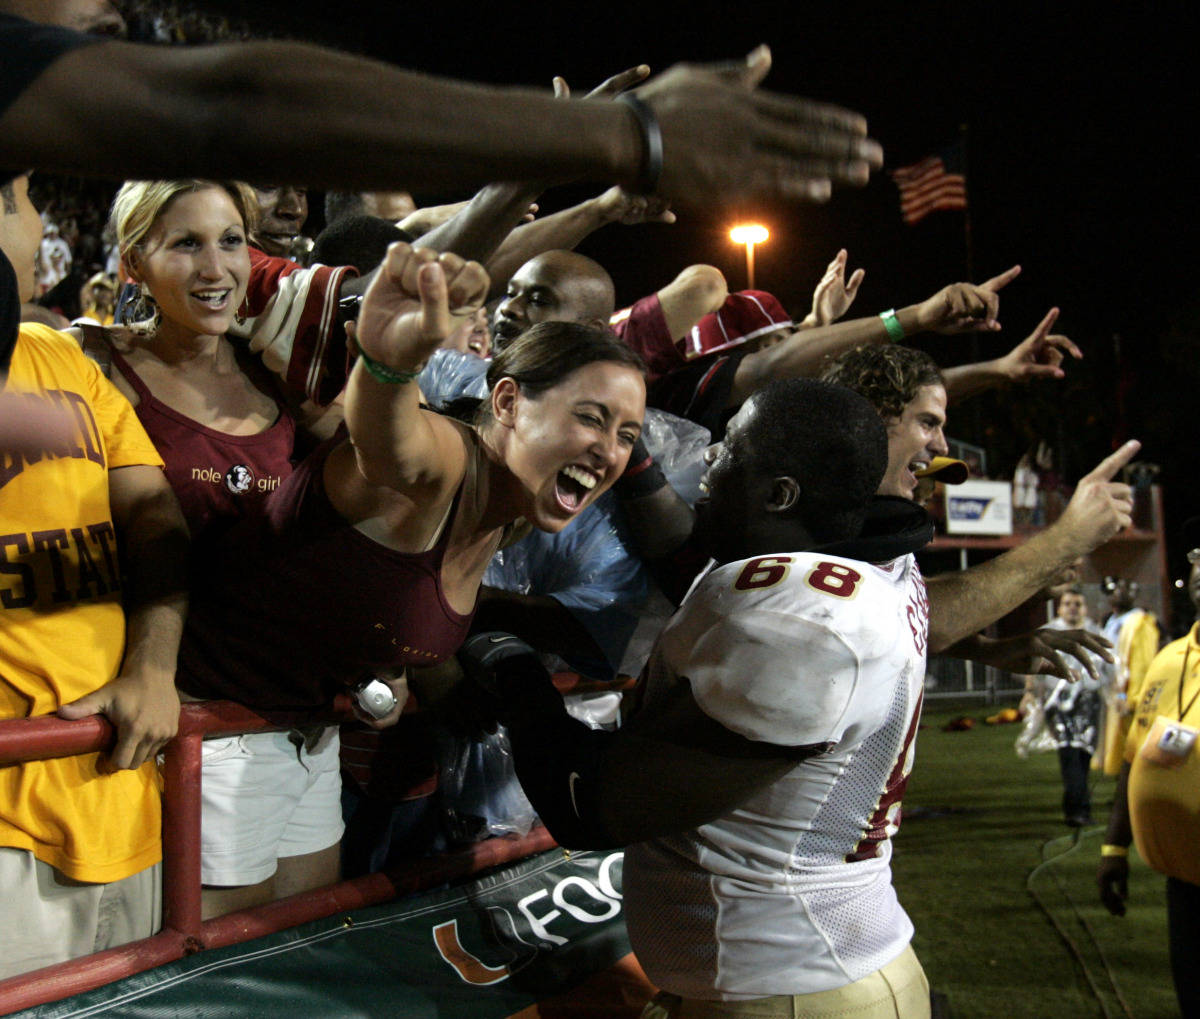 Florida State offensive guard Jacky Claude, right, celebrates Florida State's 13-10 victory over Miami with fans Monday, Sept. 4, 2006 at the Orange Bowl in Miami. (AP Photo/Lynne Sladky)